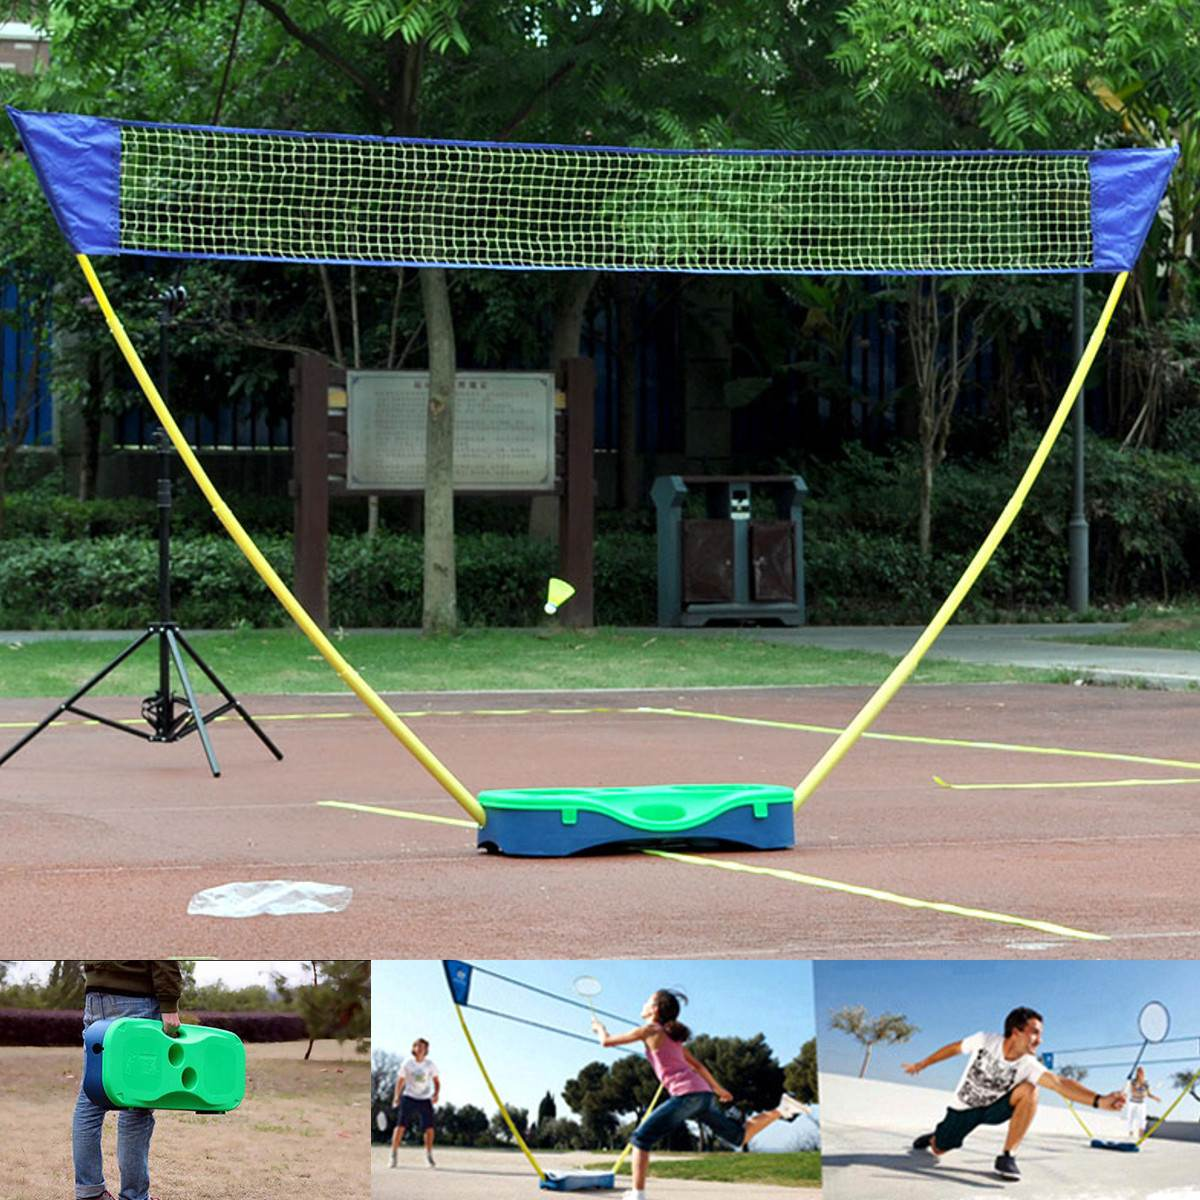 3 en 1 Sport de plein air Badminton Tennis volley-ball Net support Portable Battledore Set filet cadre support mallette de rangement